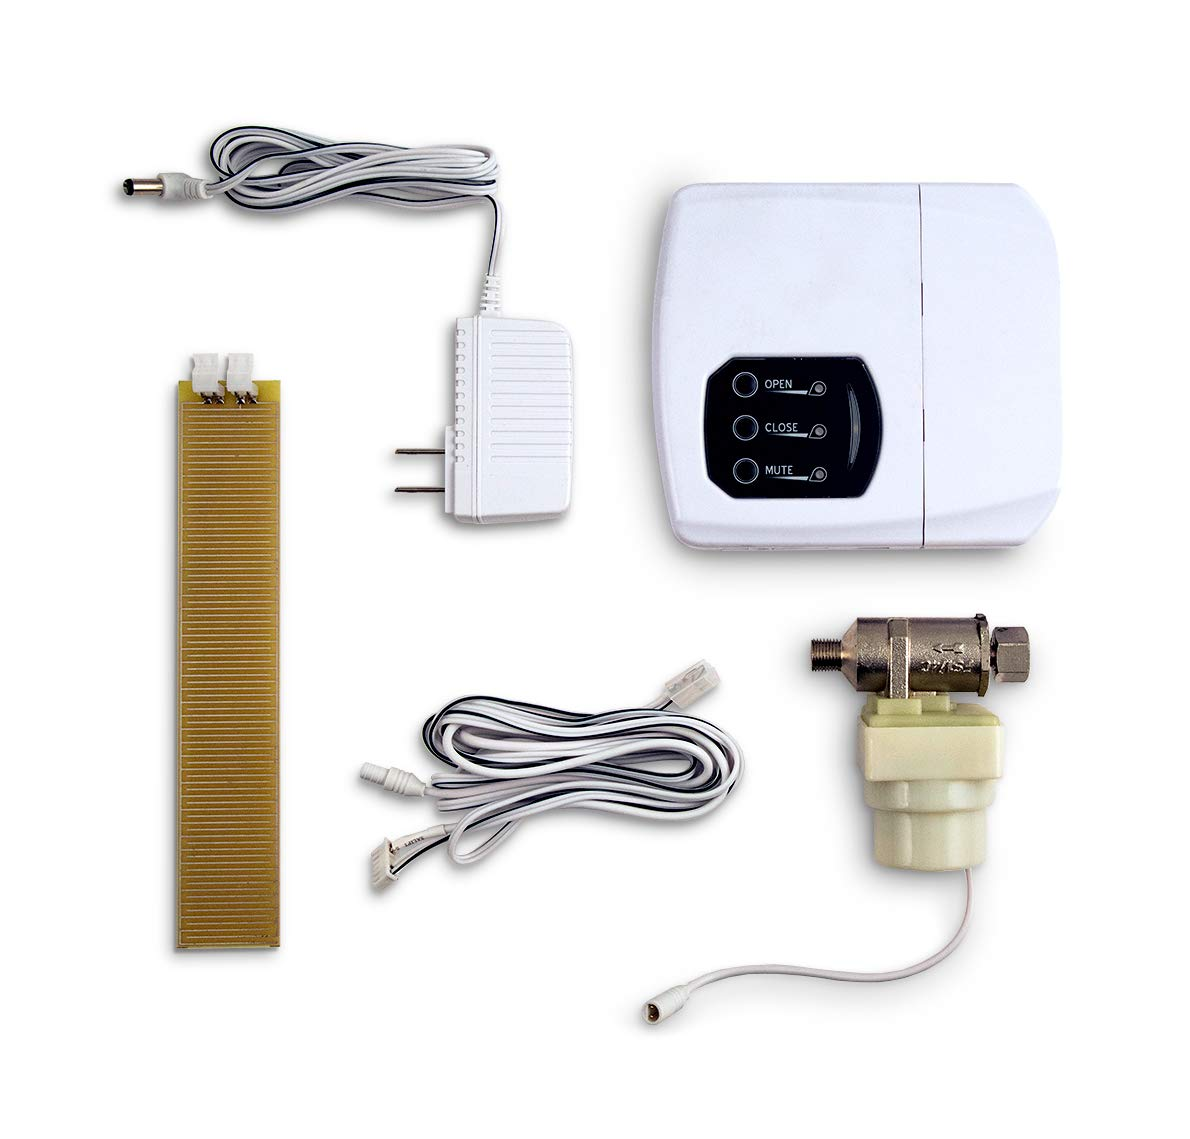 LeakSmart Automatic Leak Detection and Water Shut Off Kits- Protect Your Home from High Leak Risk Appliances (Ice Maker)